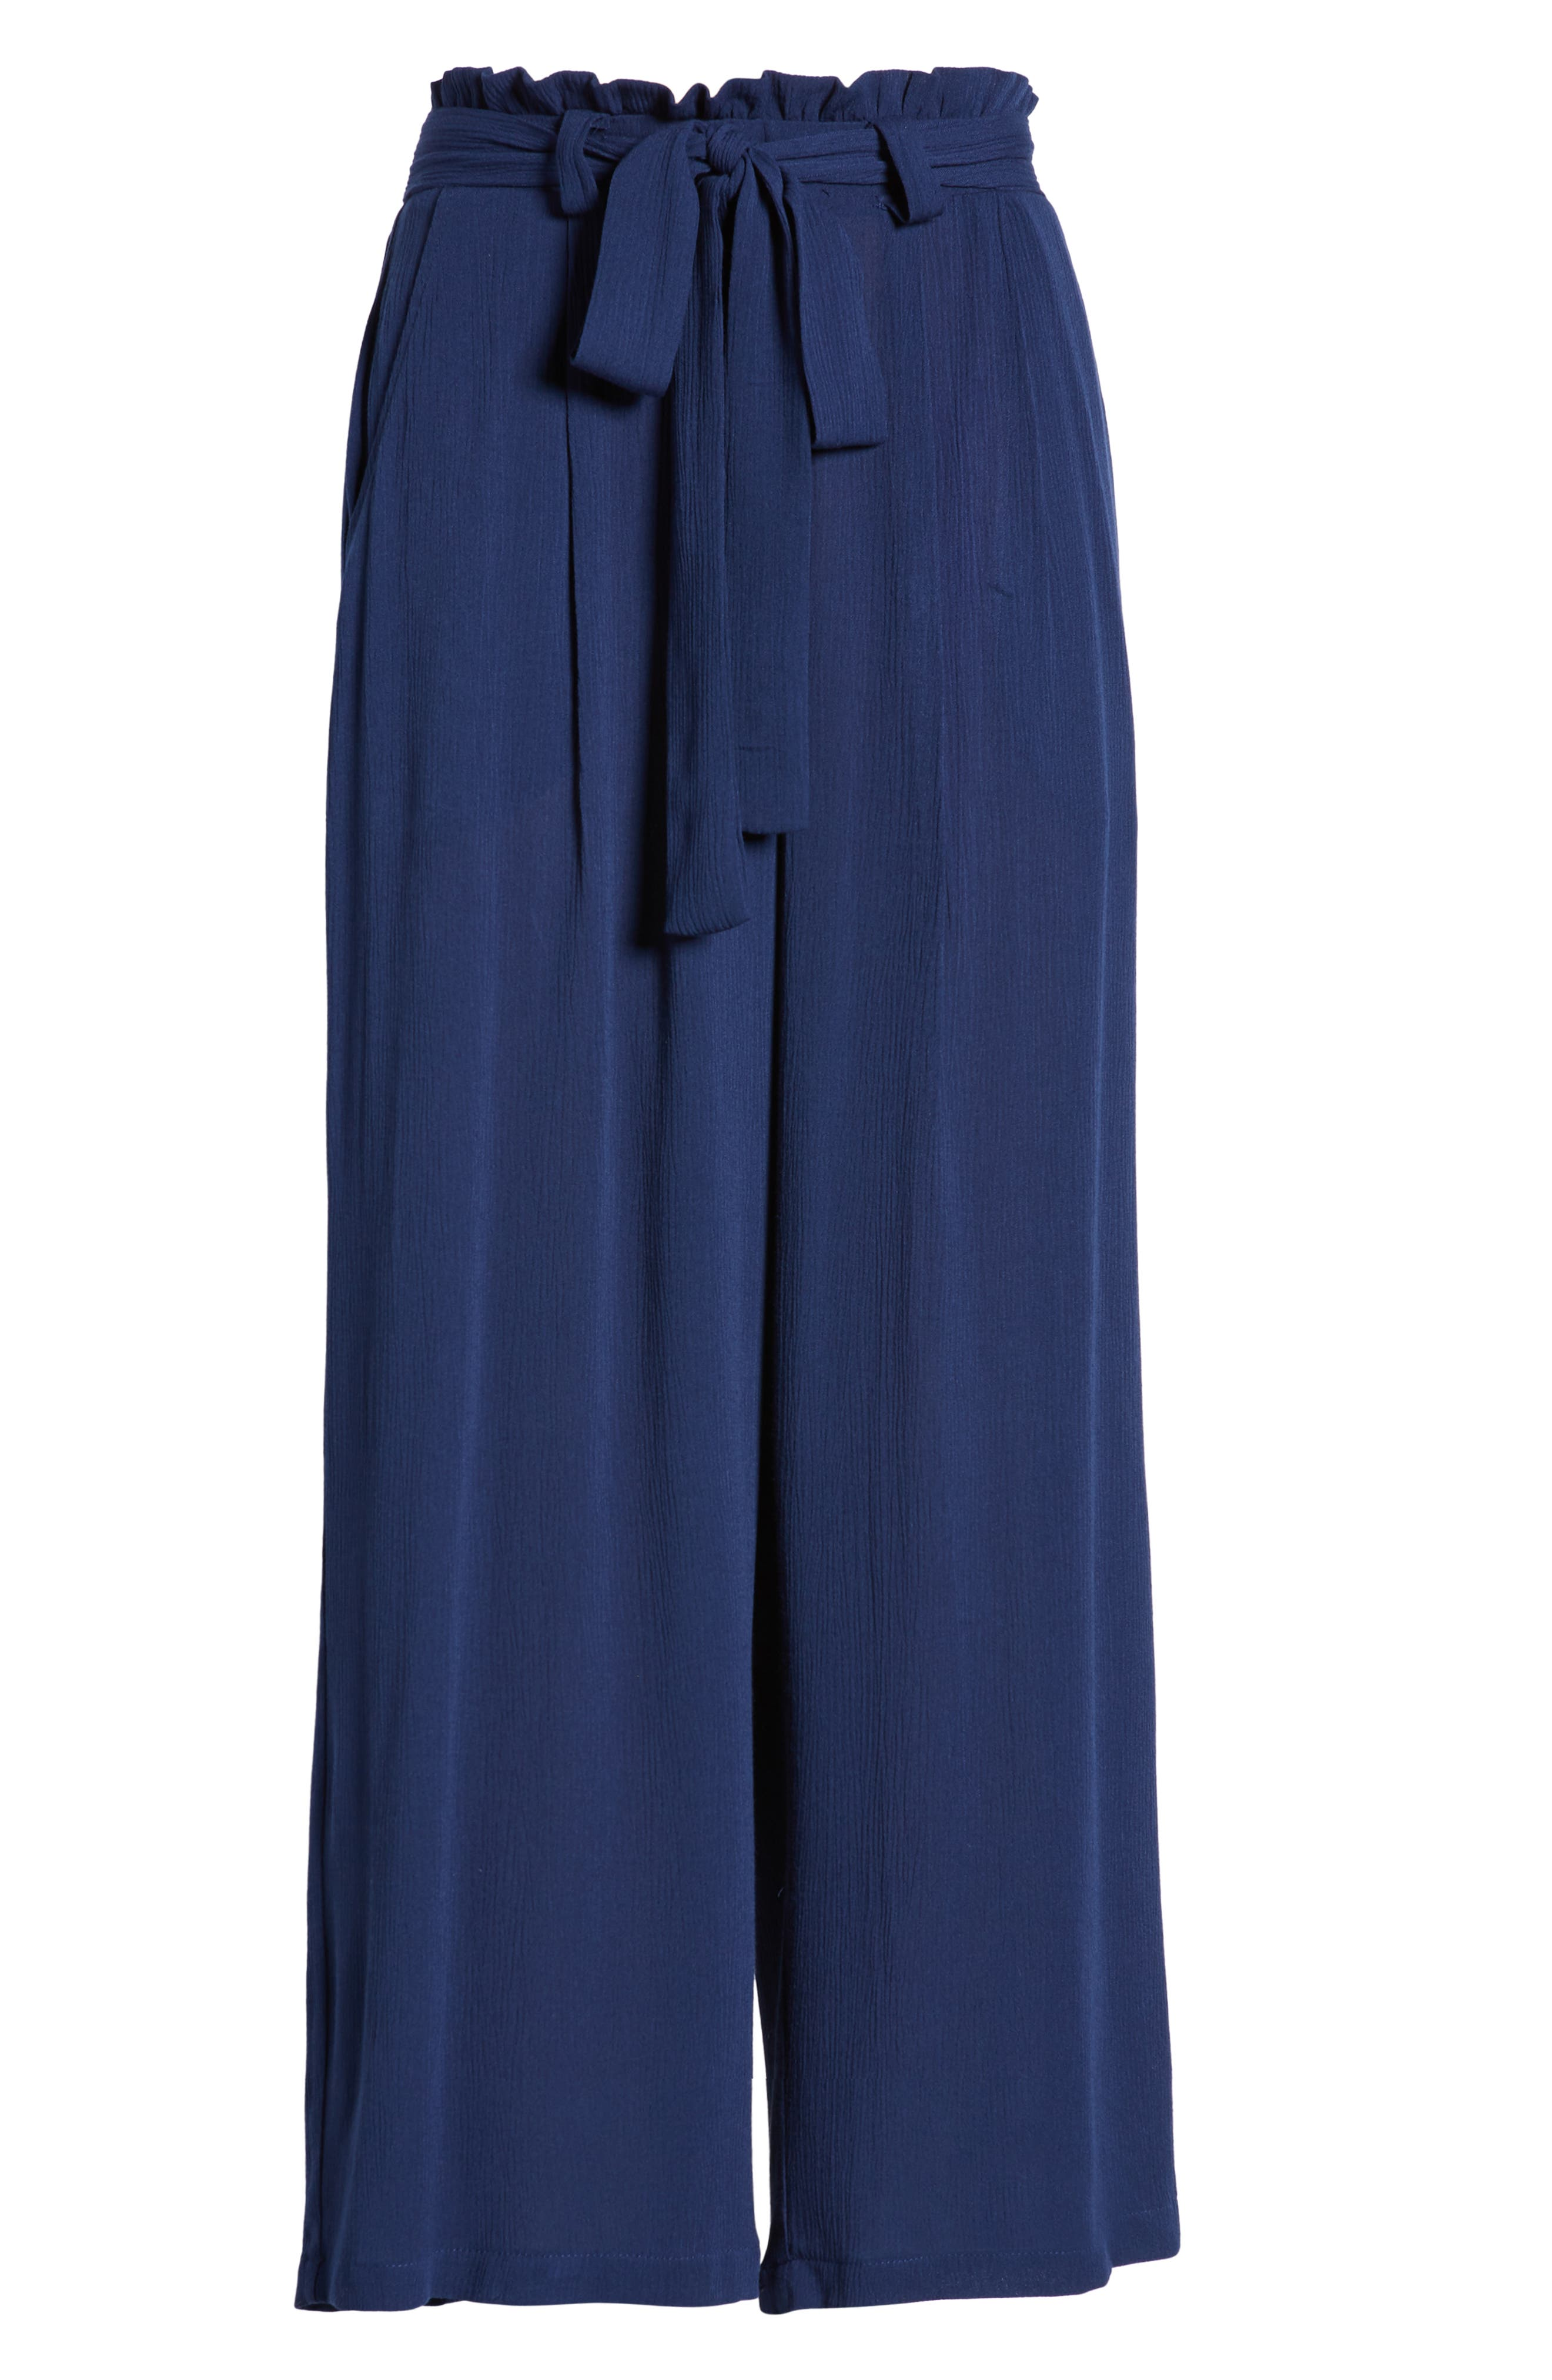 GIBSON,                             x Hi Sugarplum! Sedona Wide Leg Ankle Pants,                             Alternate thumbnail 7, color,                             CHAMBRAY SOLID